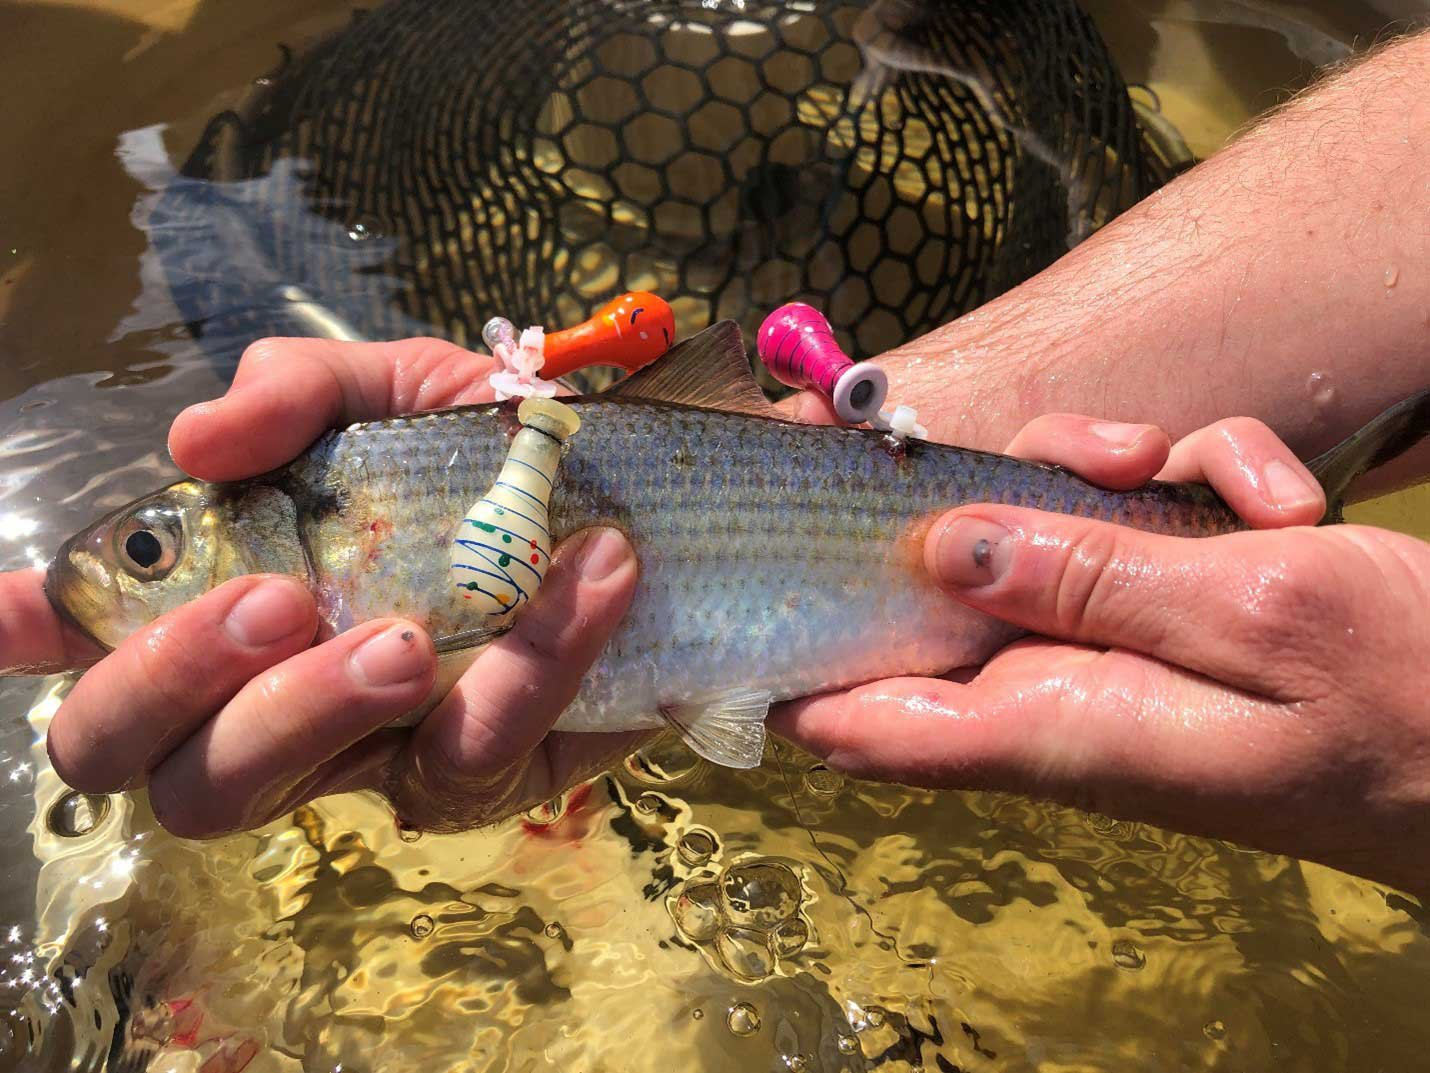 river herring with tags - top environmental consulting services firm normandeau associates